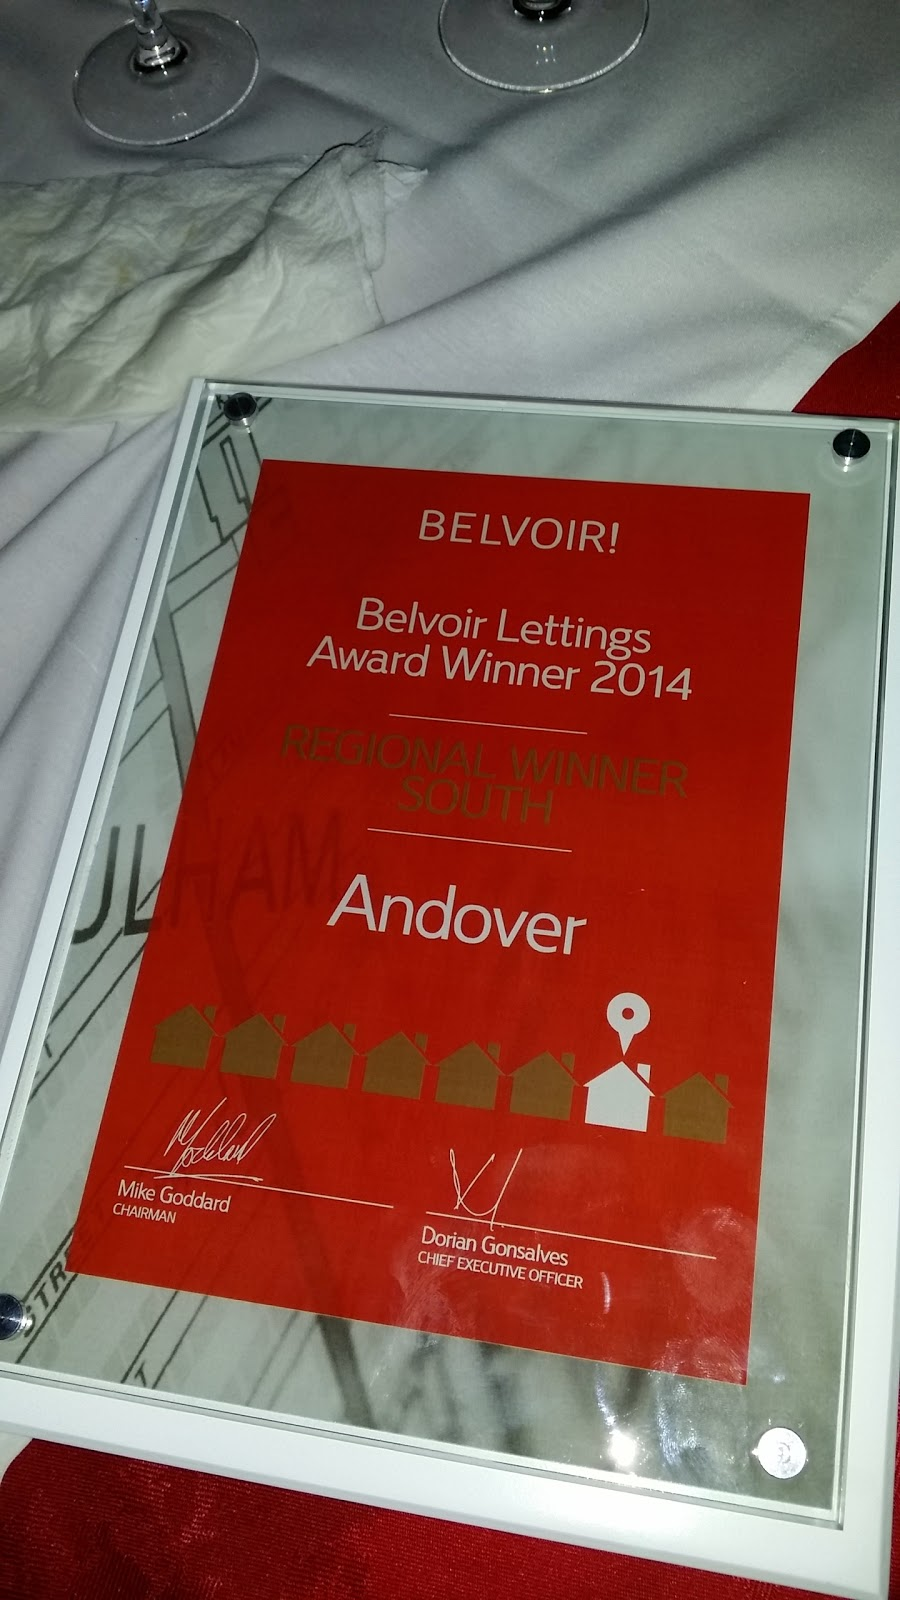 Belvoir Andover Award 2014